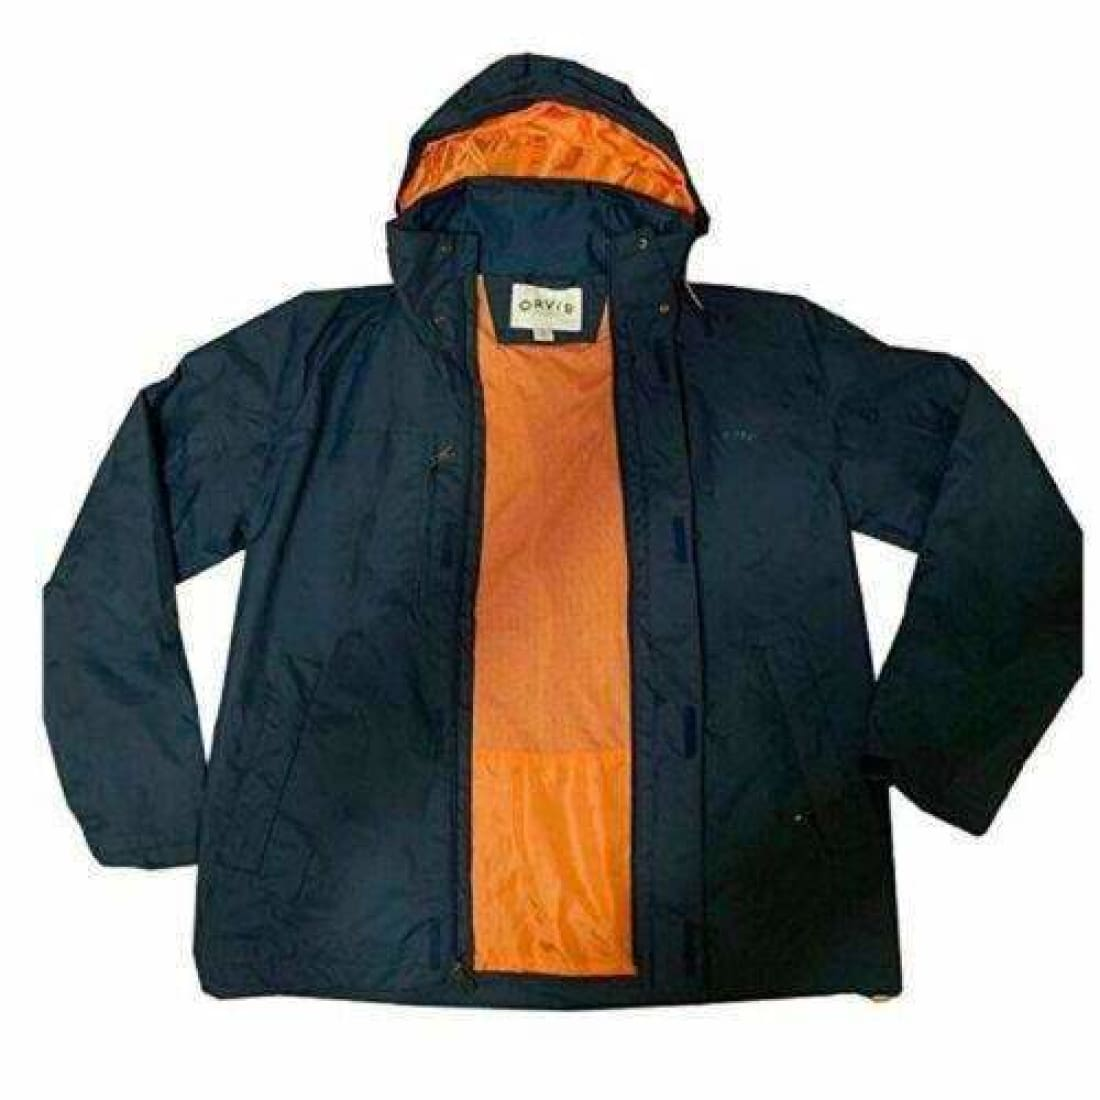 Orvis Mens Wahoo Hooded Rain Jacket Xl Atlantic Coats & Jackets